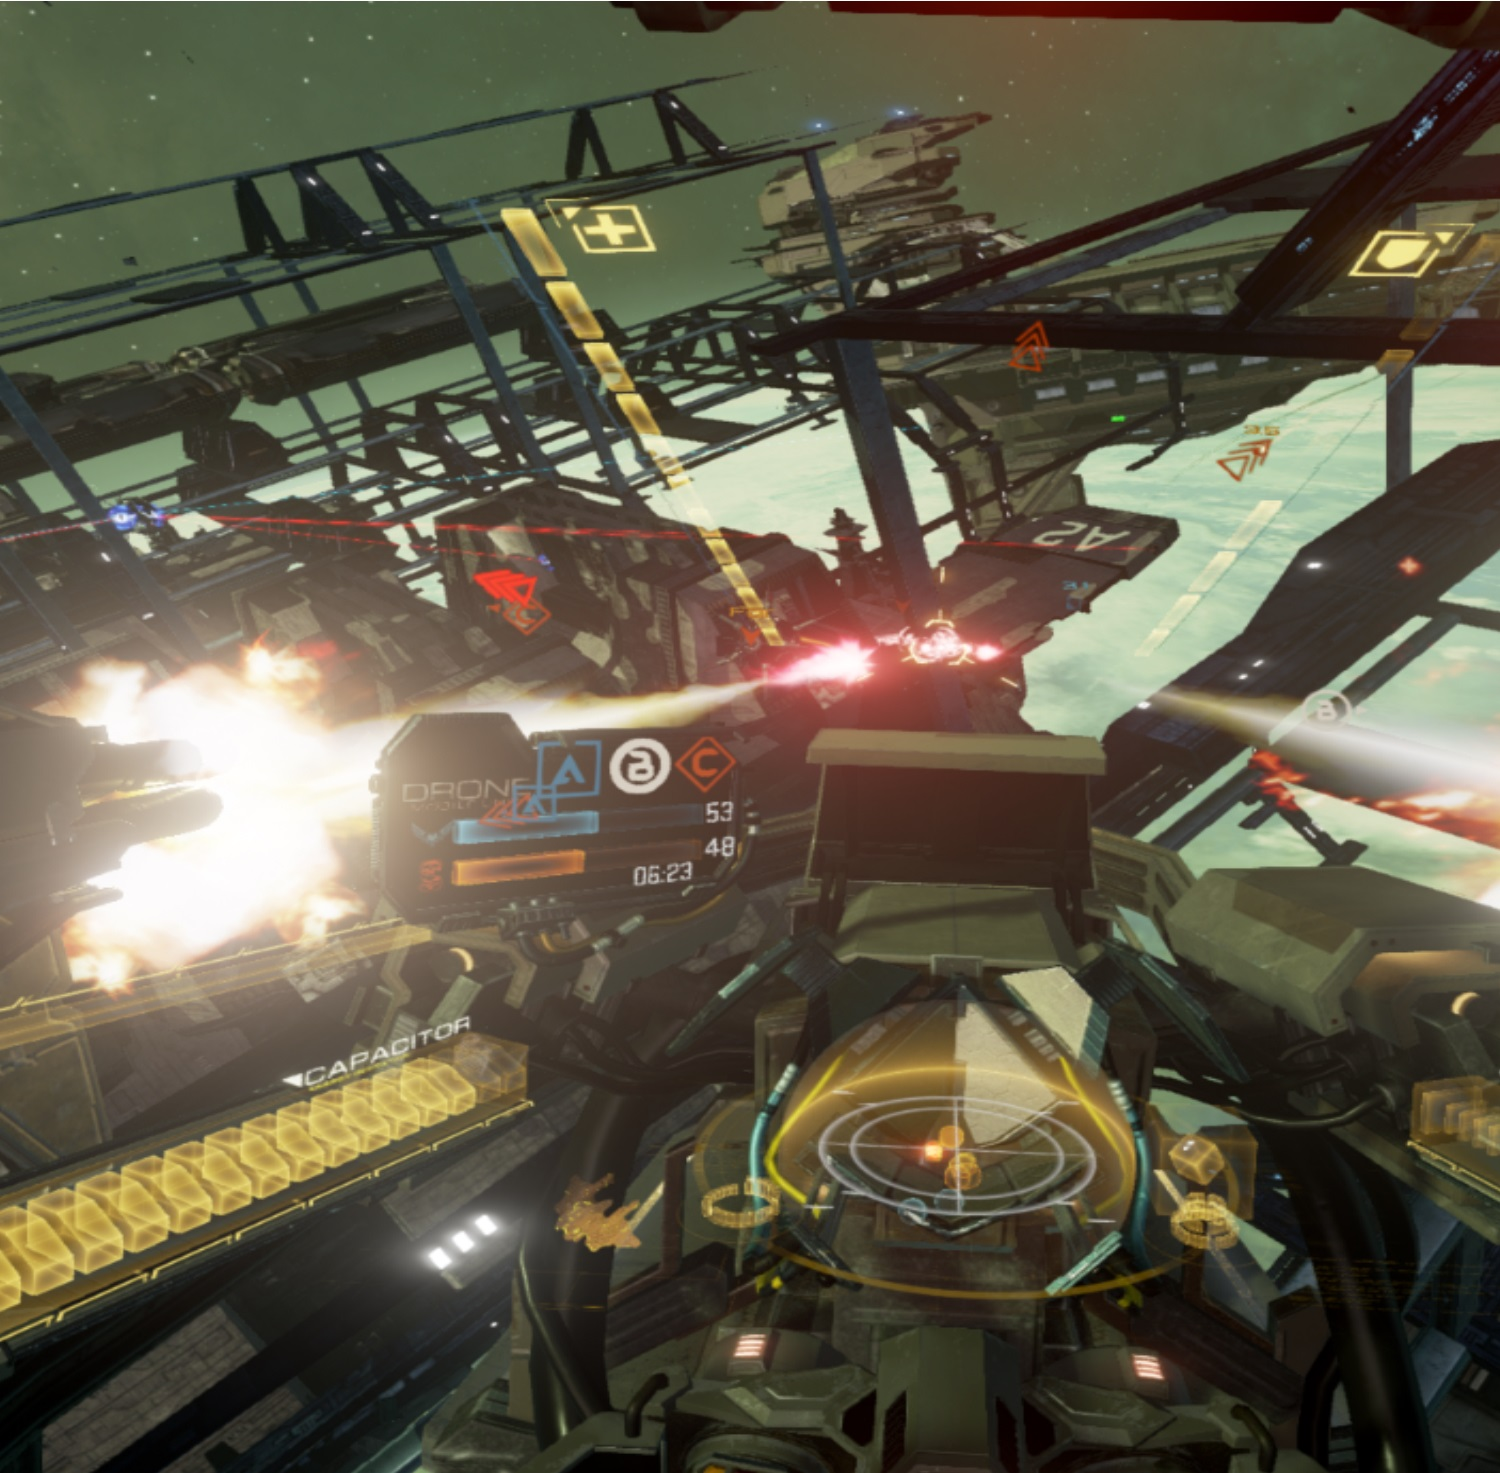 Seven games for Oculus Rift owners to seek out now | Ars Technica